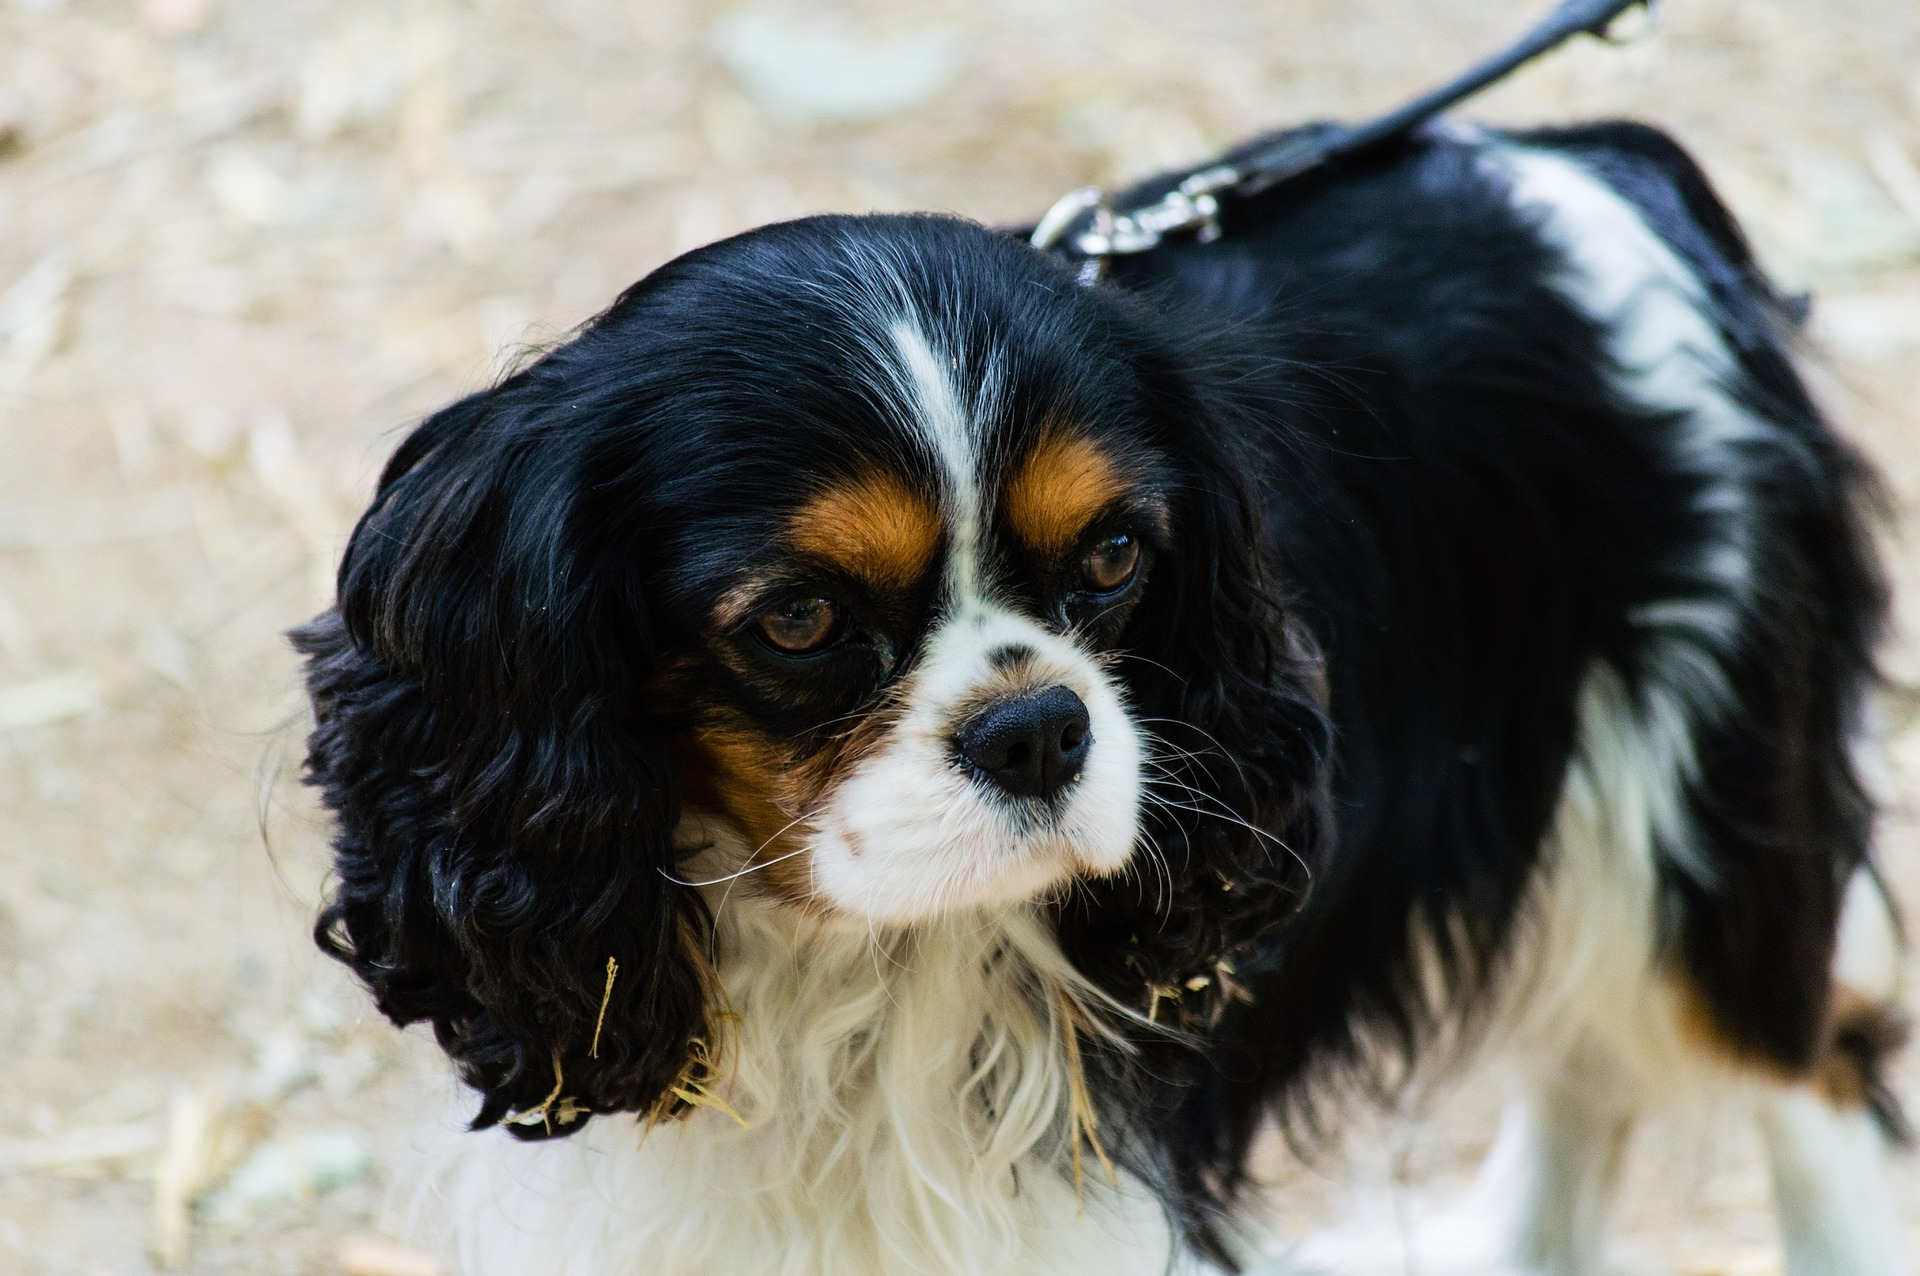 king charles spaniel-dog-loss-grief-healing